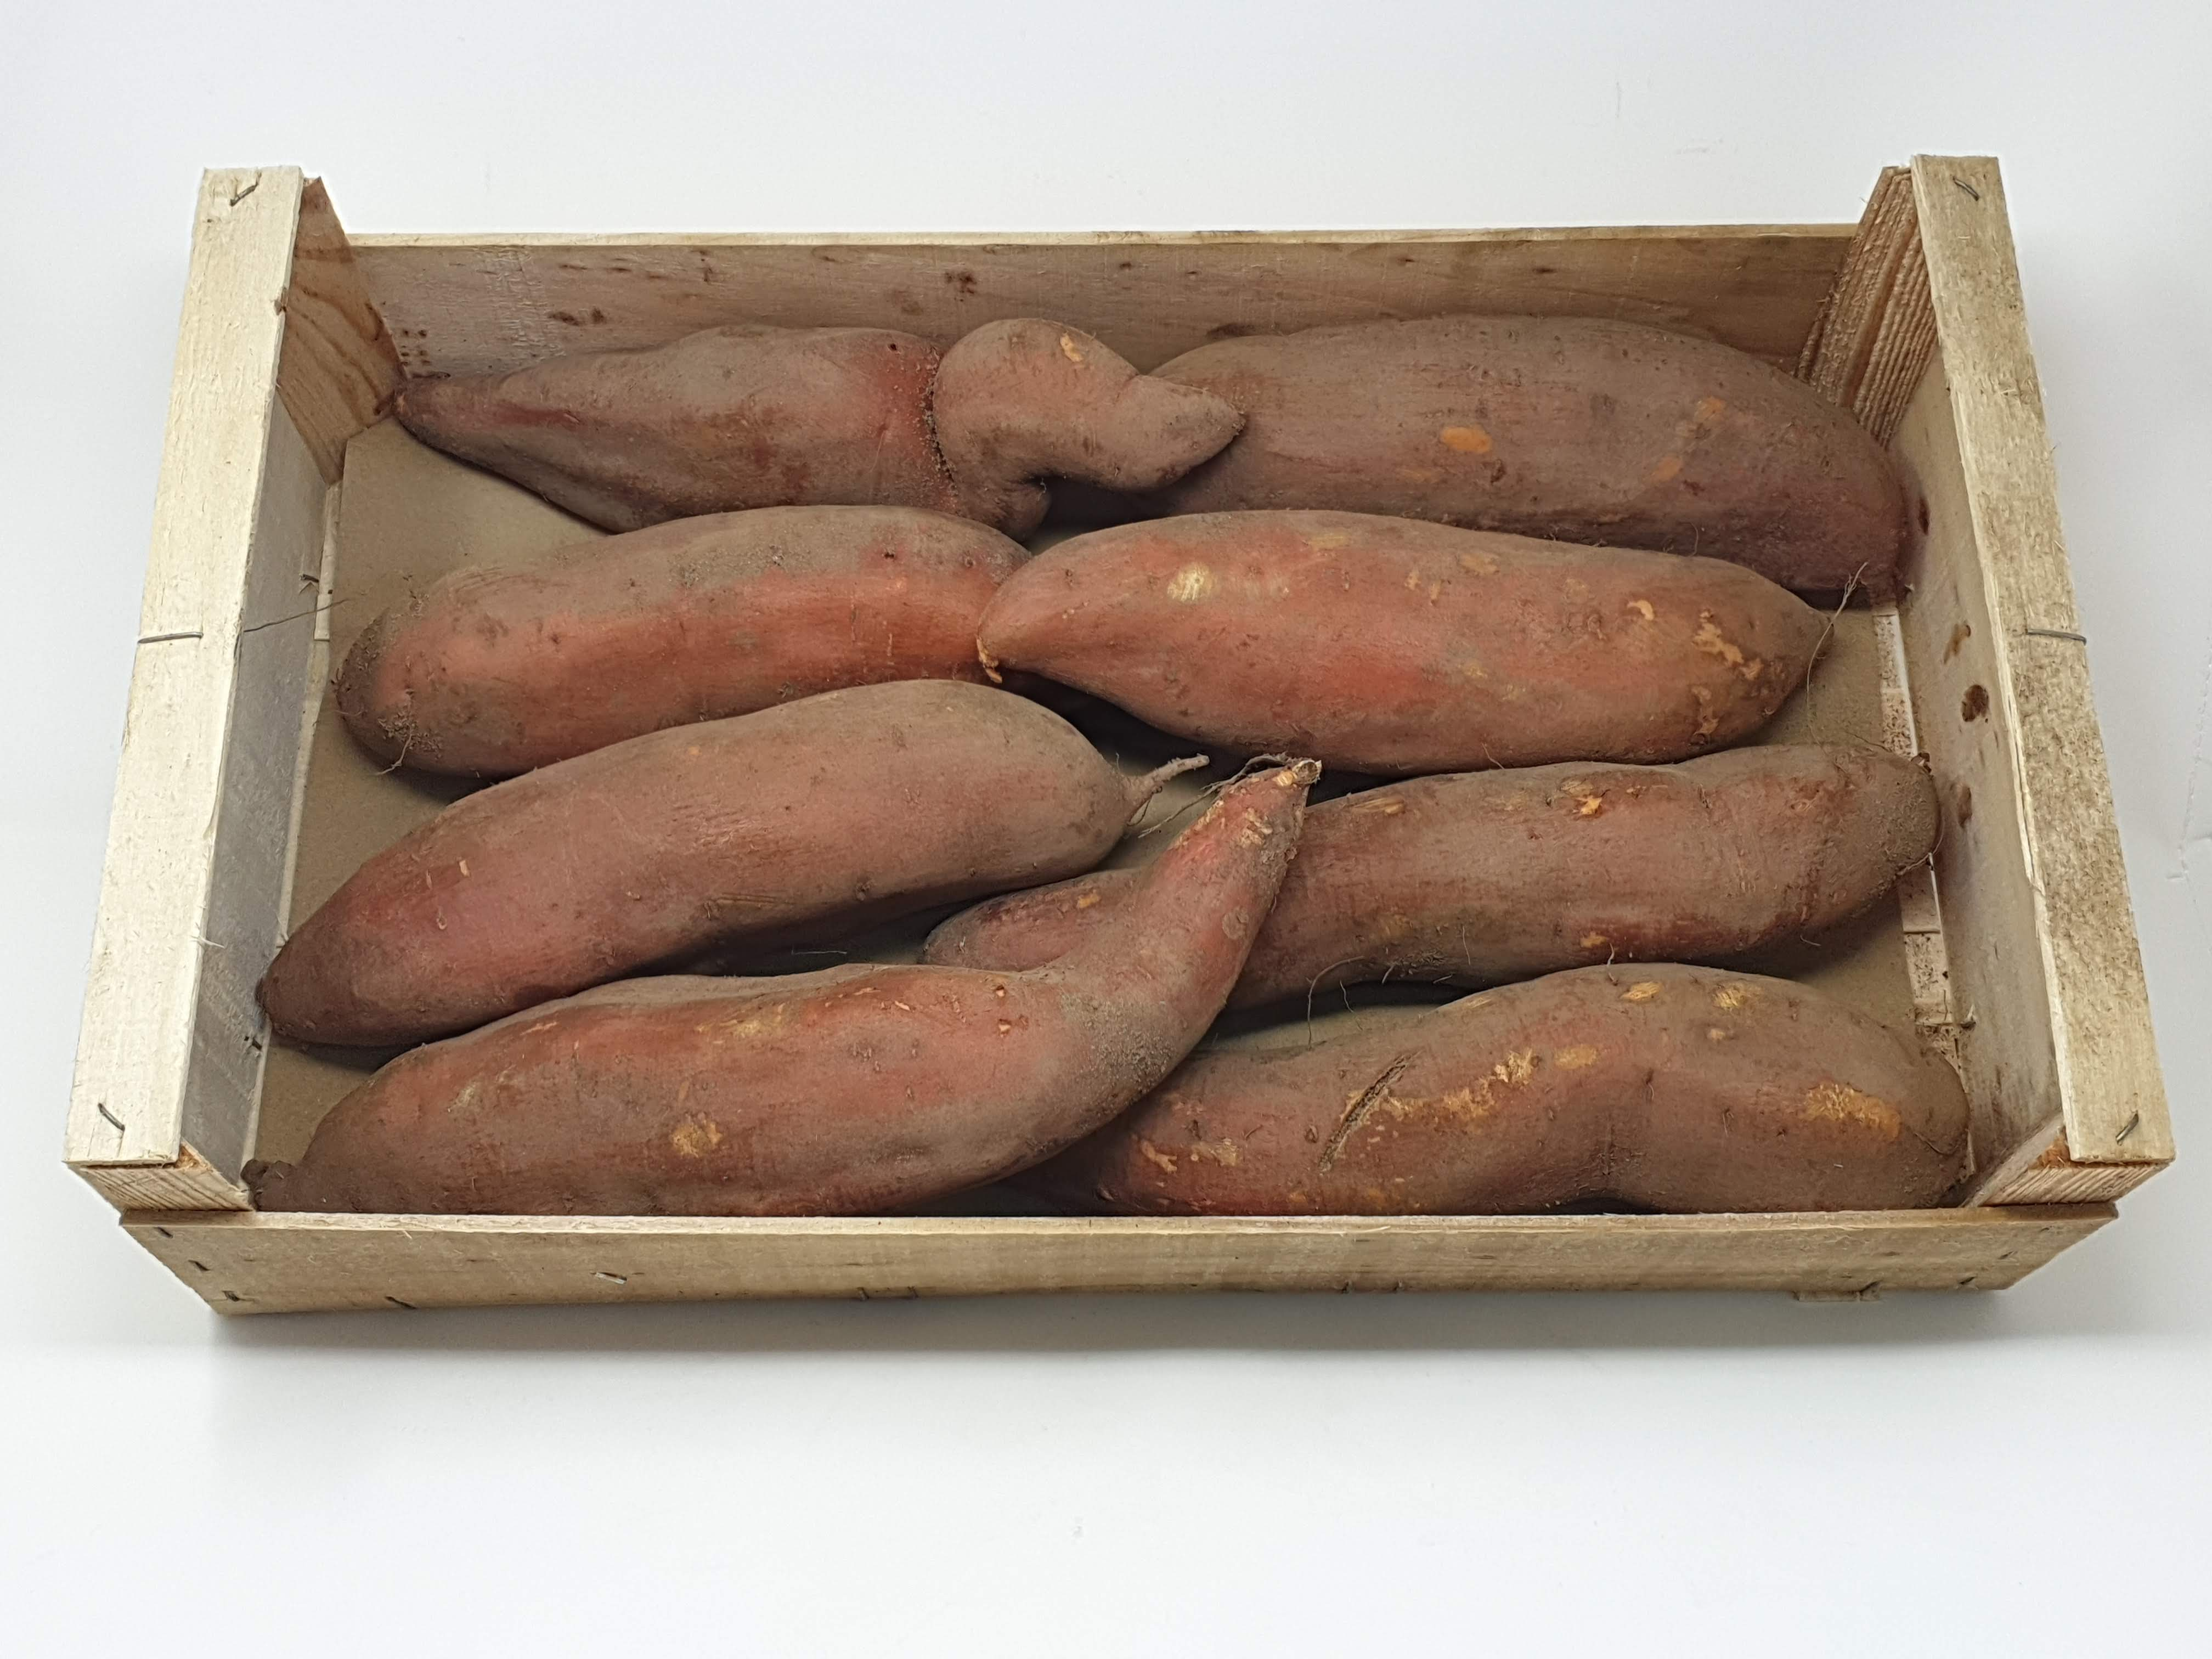 Patate douce vrac Image